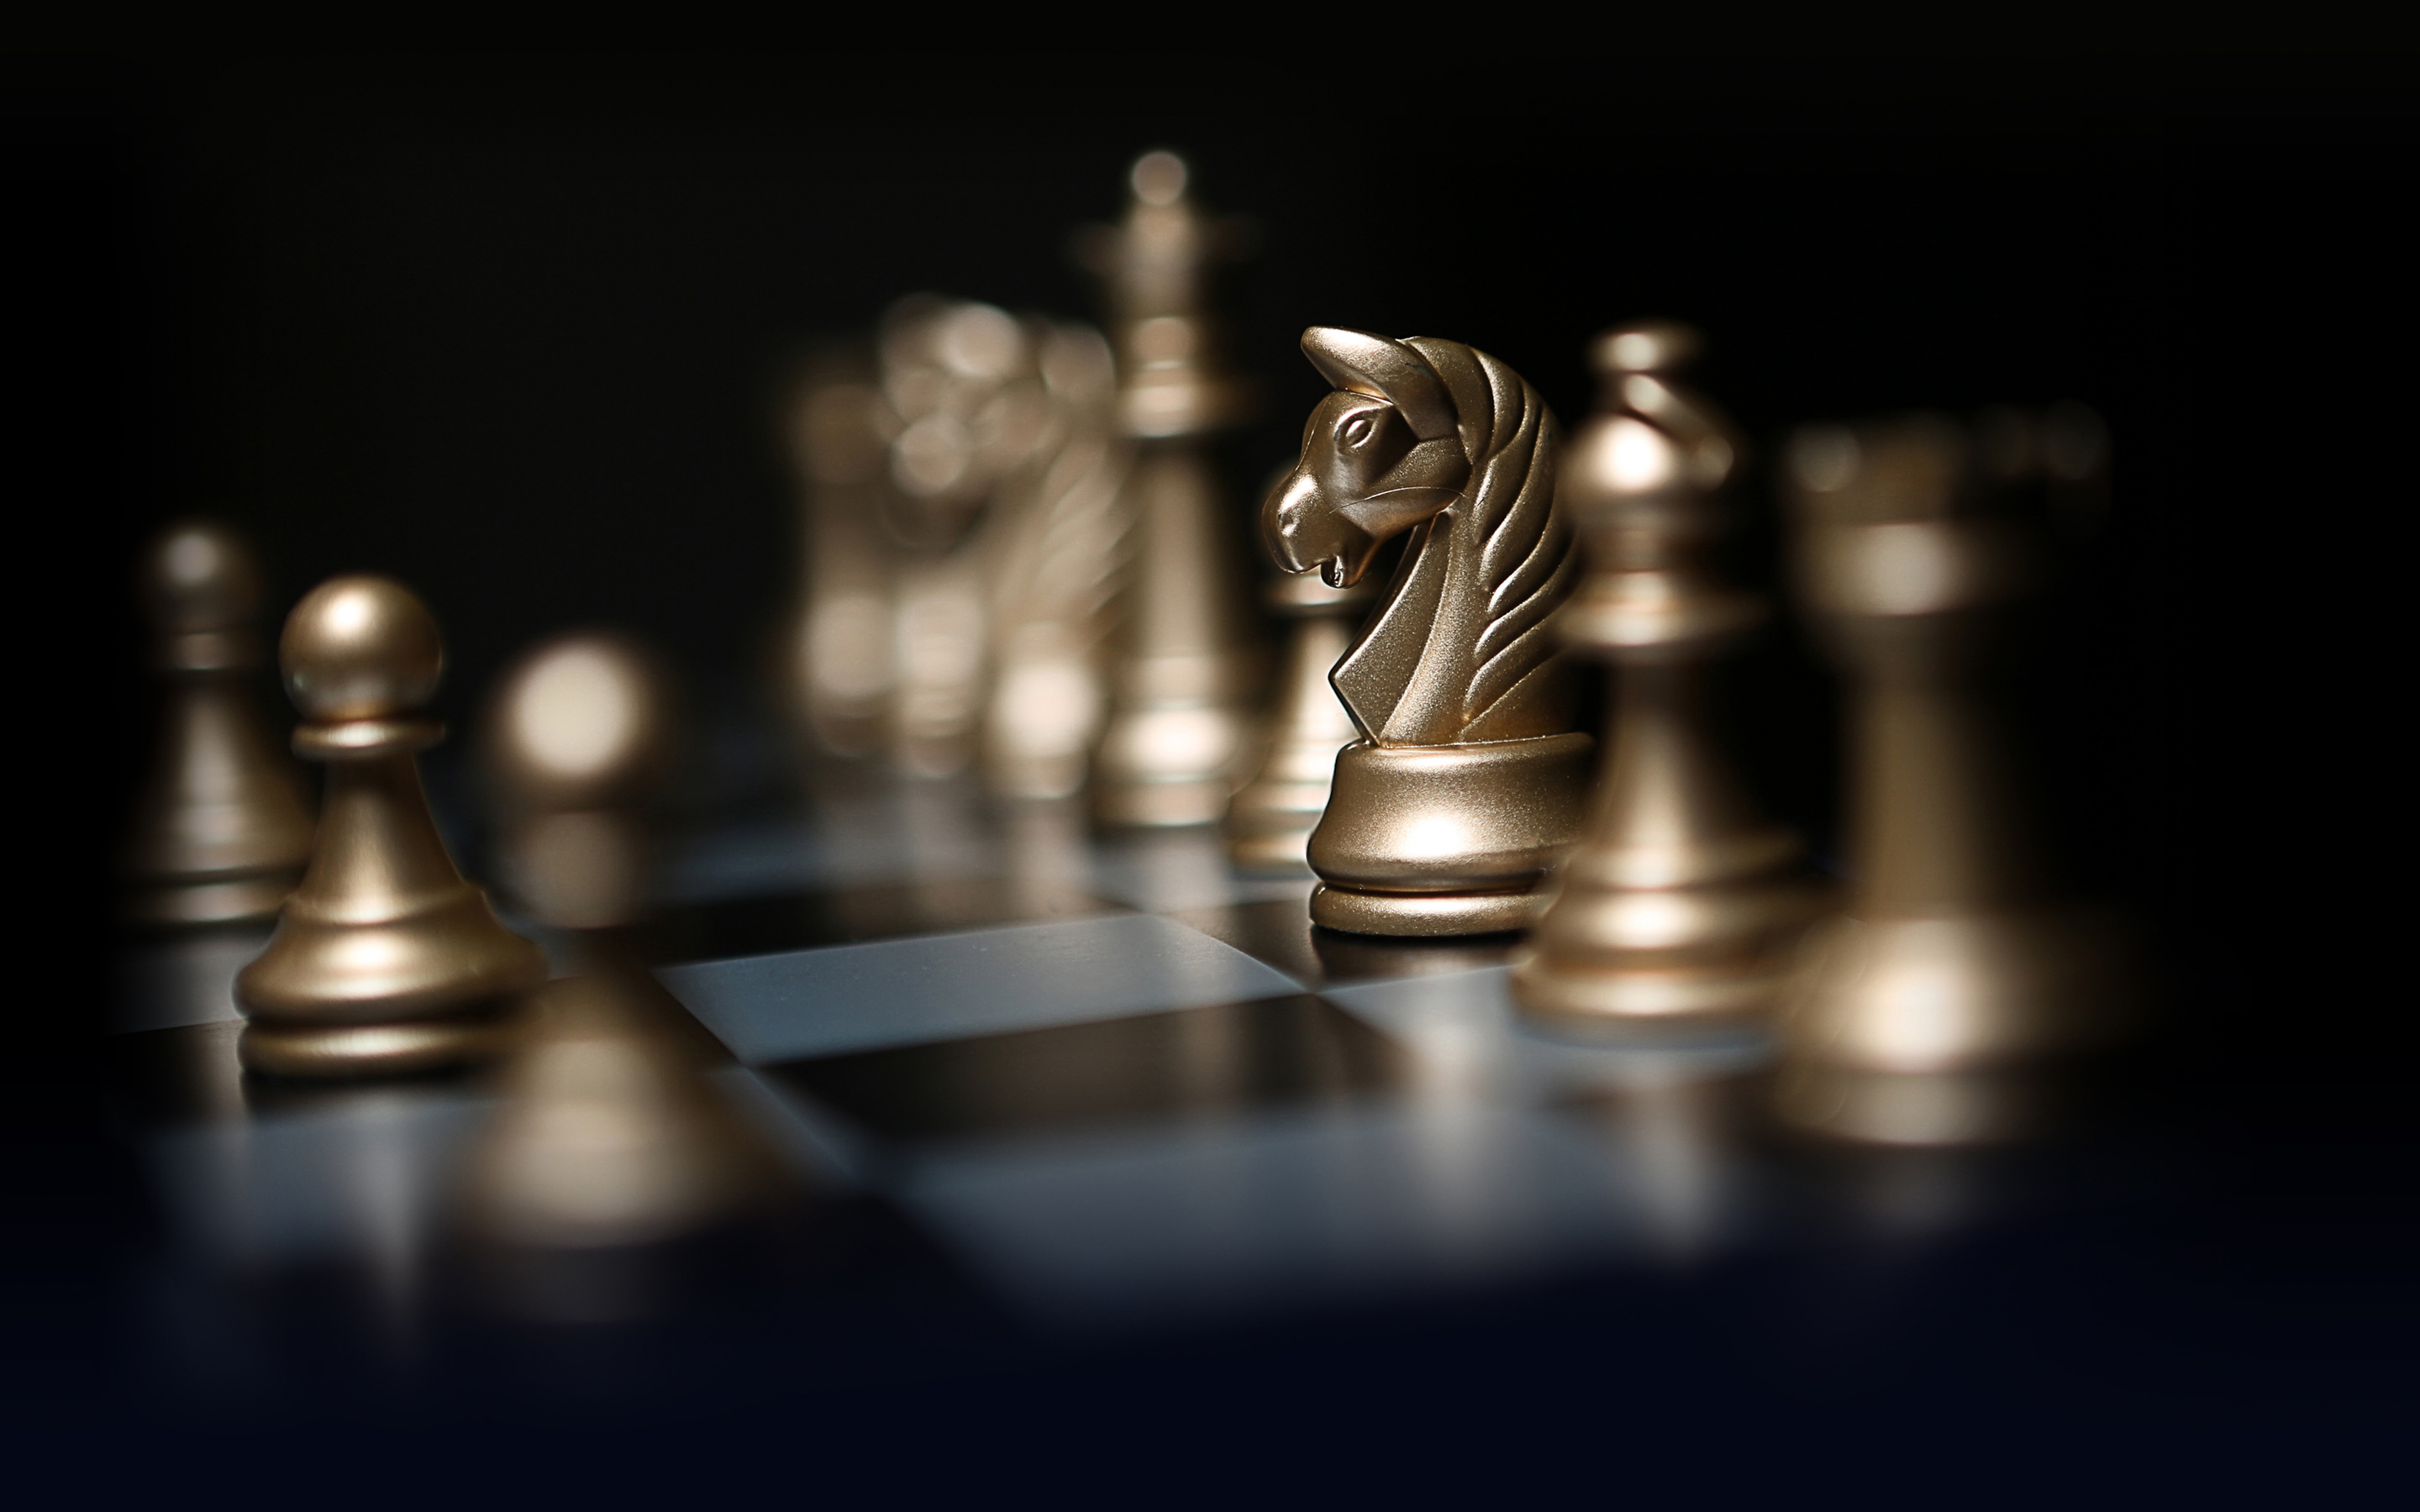 chess hd wallpapers hd wallpapers